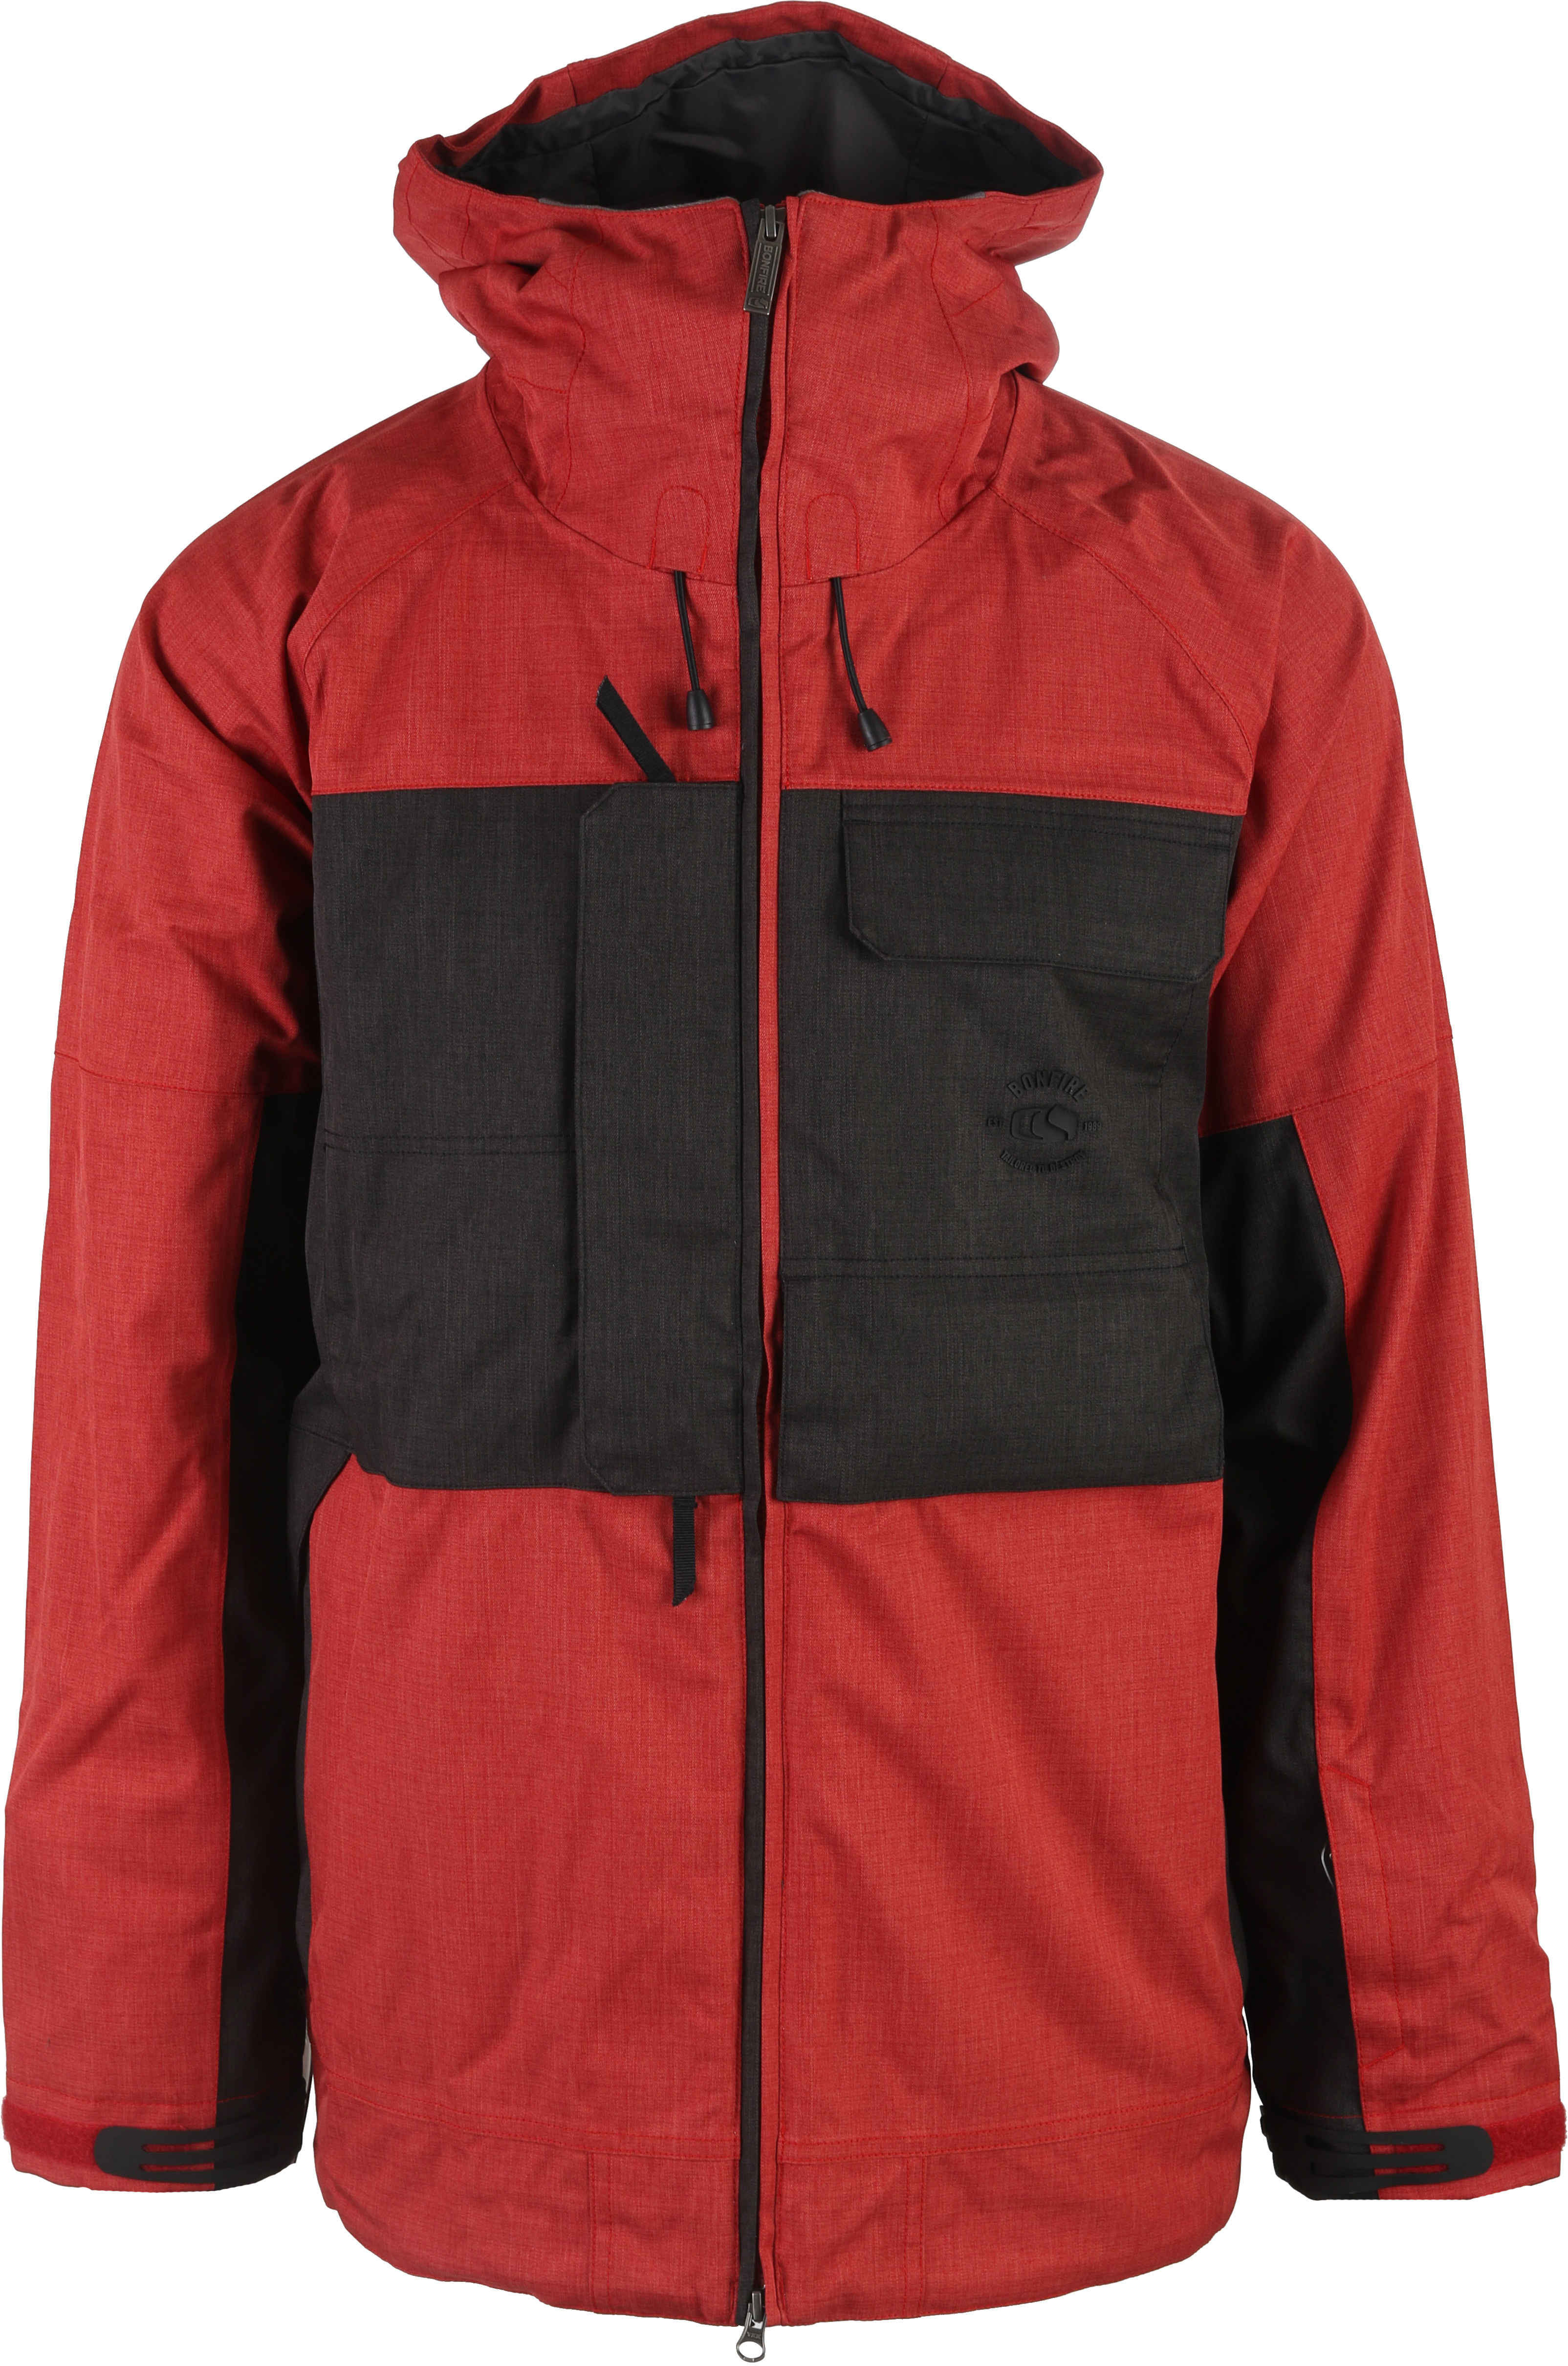 Bonfire Eager Jacket Review The Good Ride